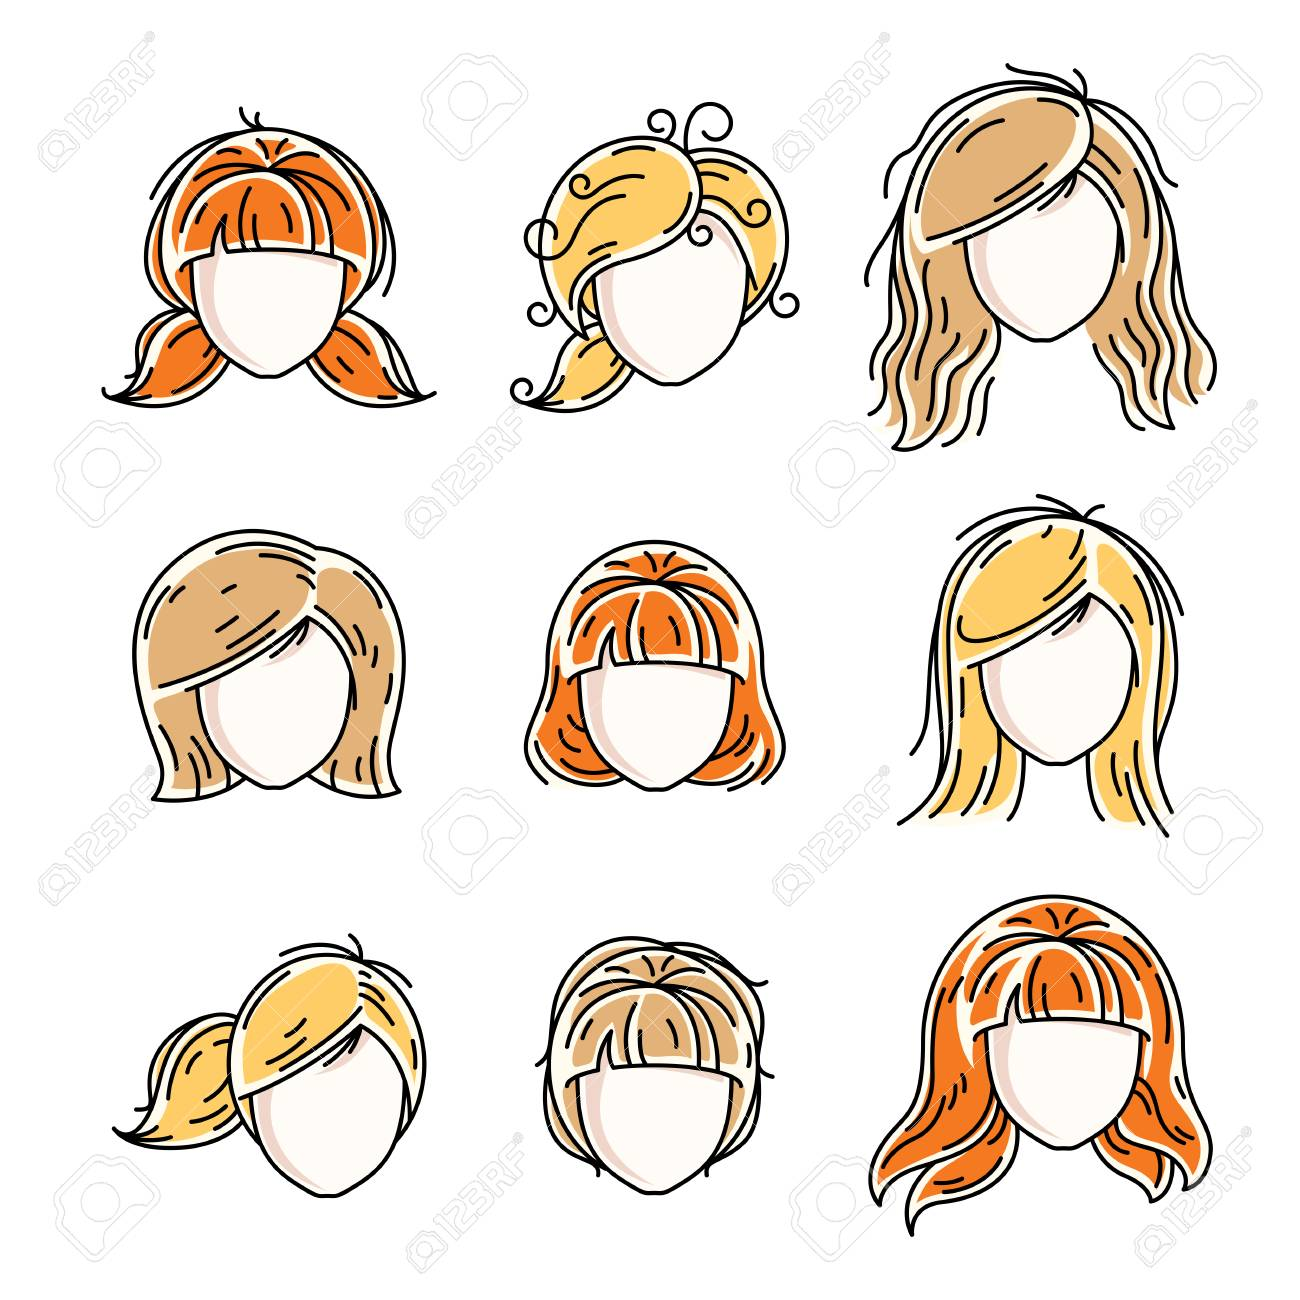 Collection Of Women Faces Human Heads Diverse Vector Characters